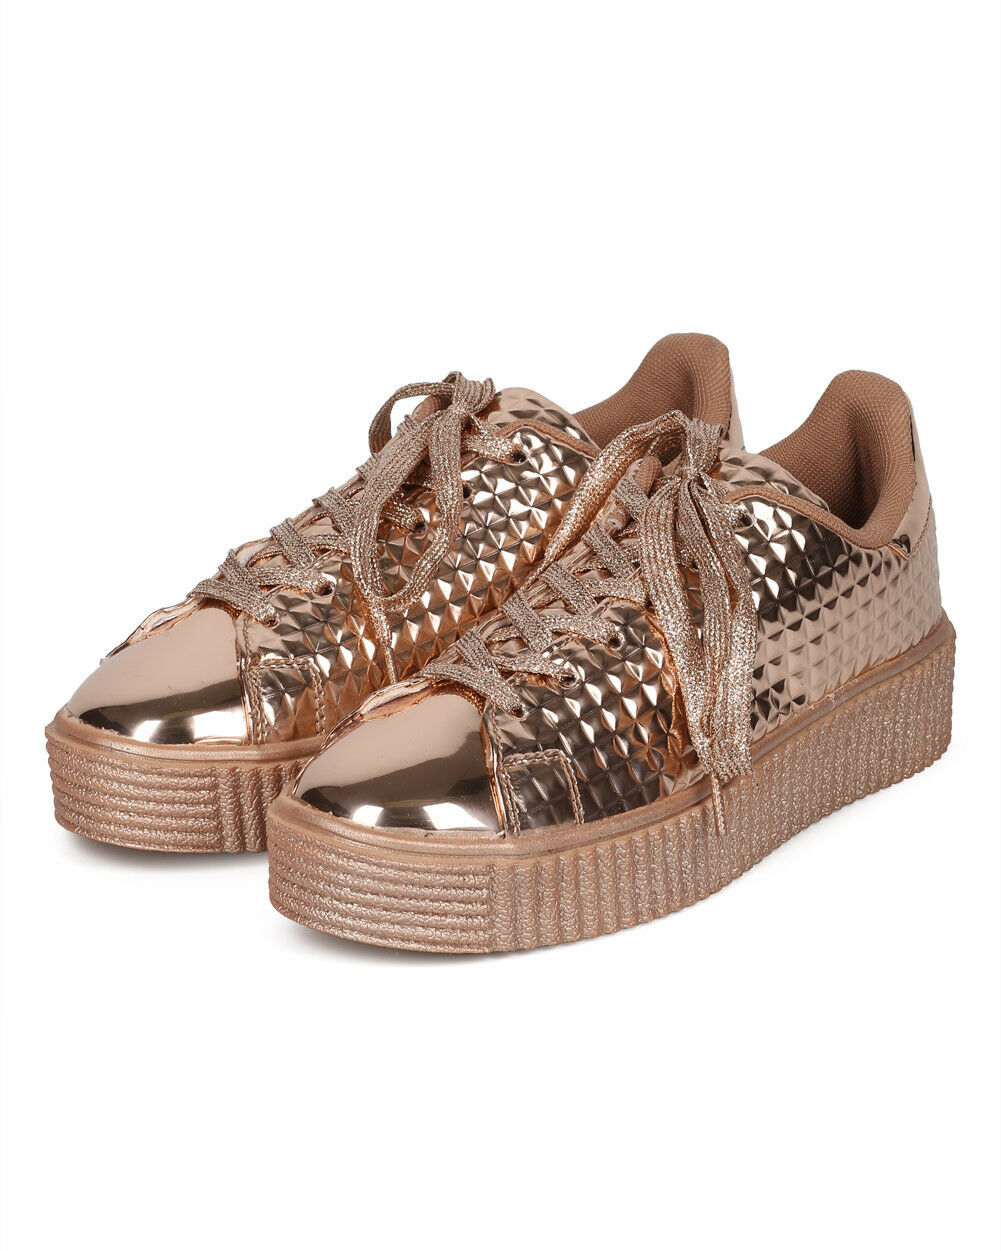 New Women Qupid Paisley-01 Embossed PU Pyramid Stud Lace Up Creeper Sneaker